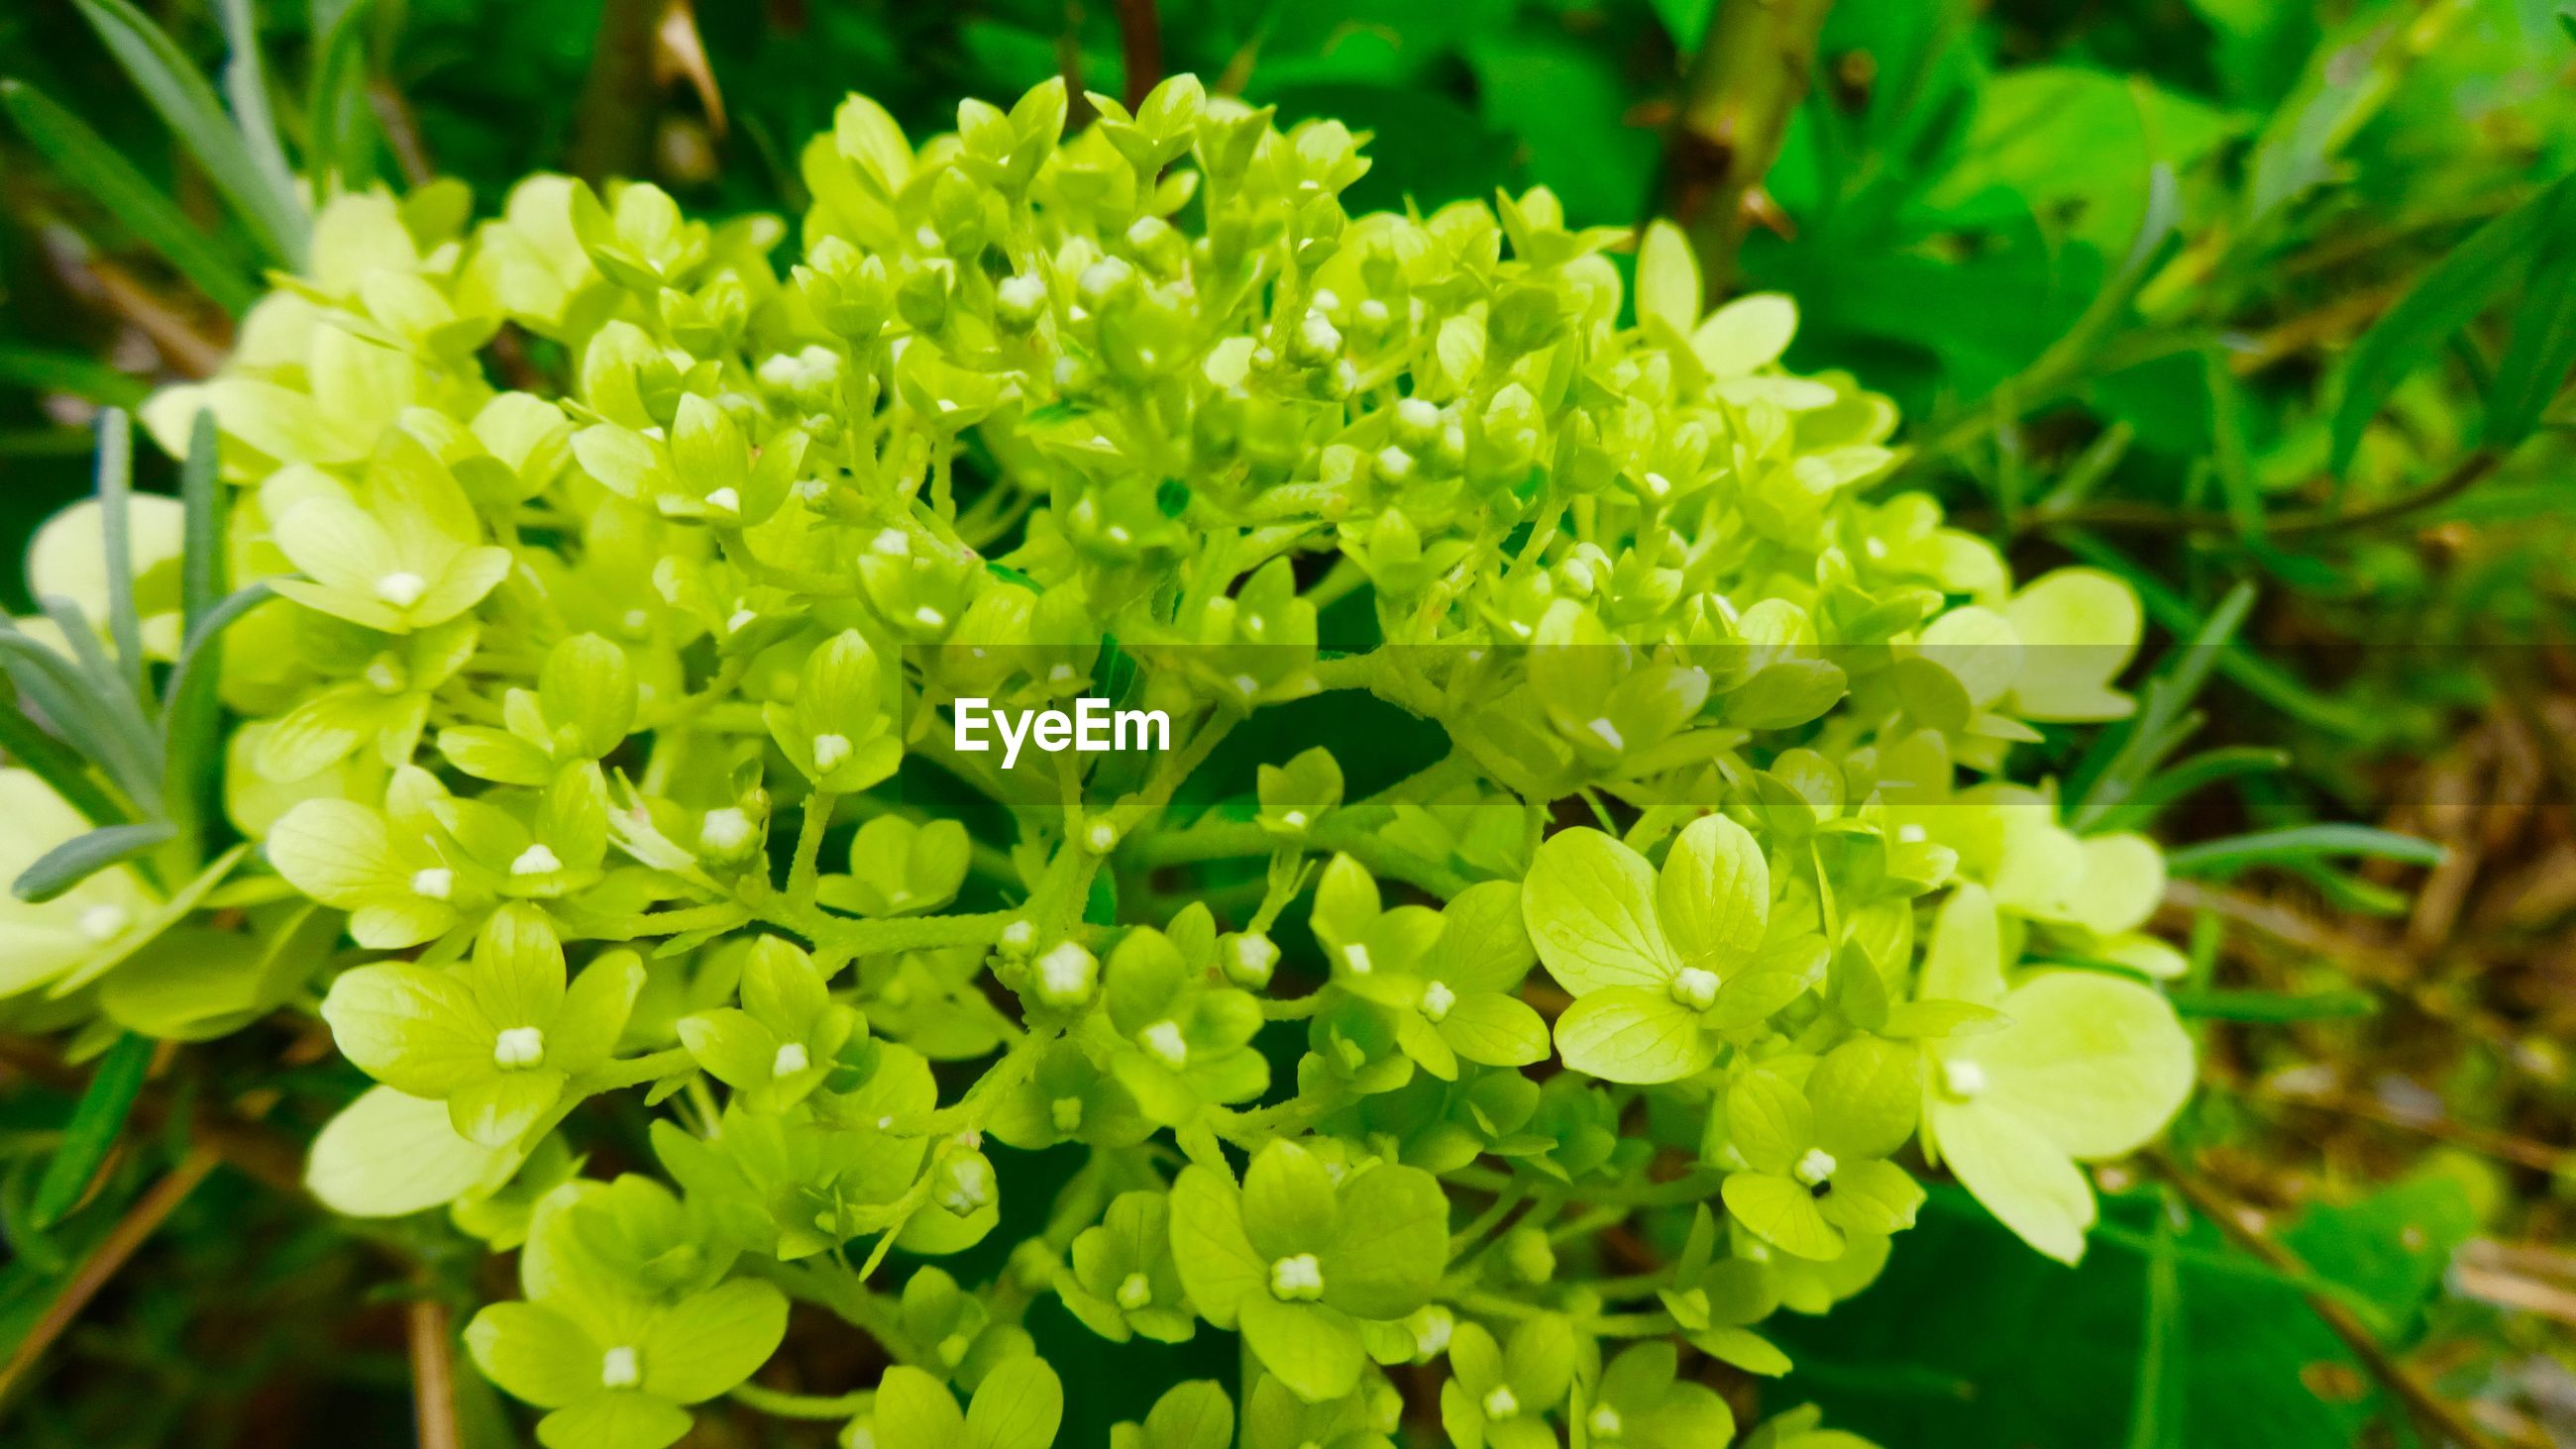 Close-up of green hydrangeas blooming outdoors